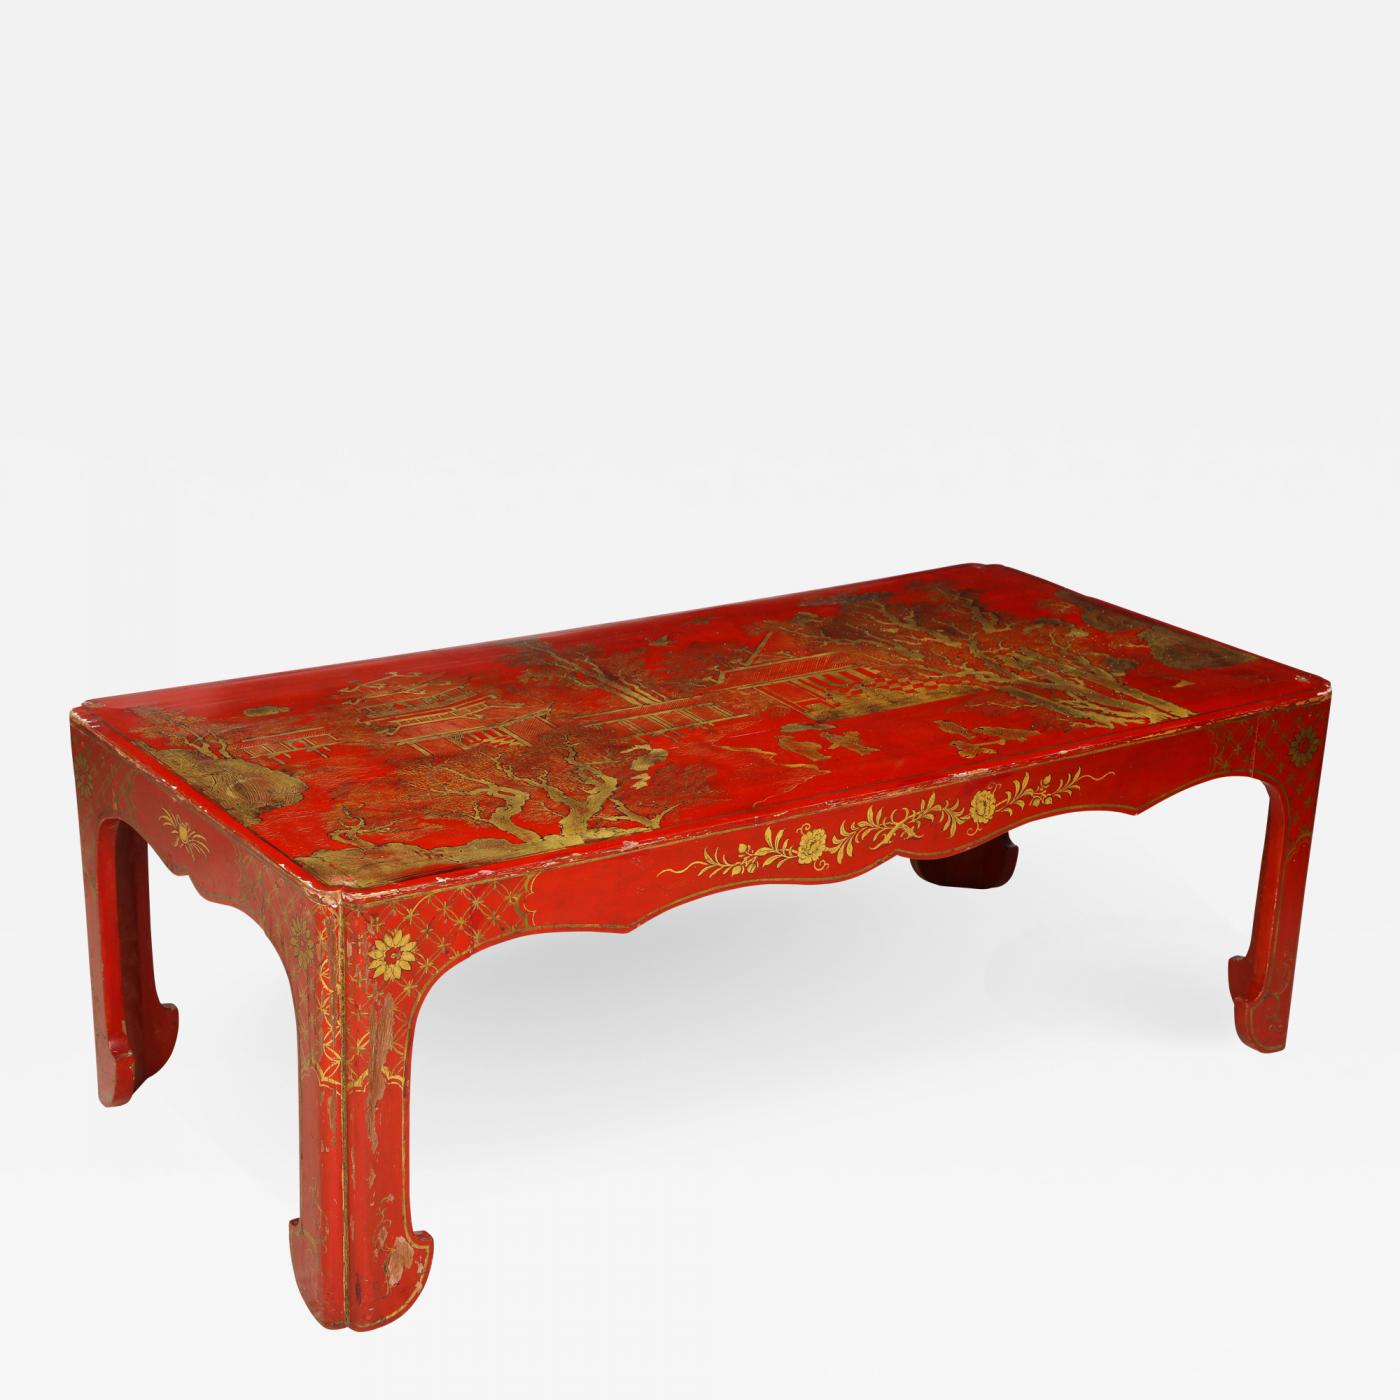 Stupendous Beautifully Hand Painted Red Lacquered Chinoiserie Cocktail Coffee Table Bralicious Painted Fabric Chair Ideas Braliciousco